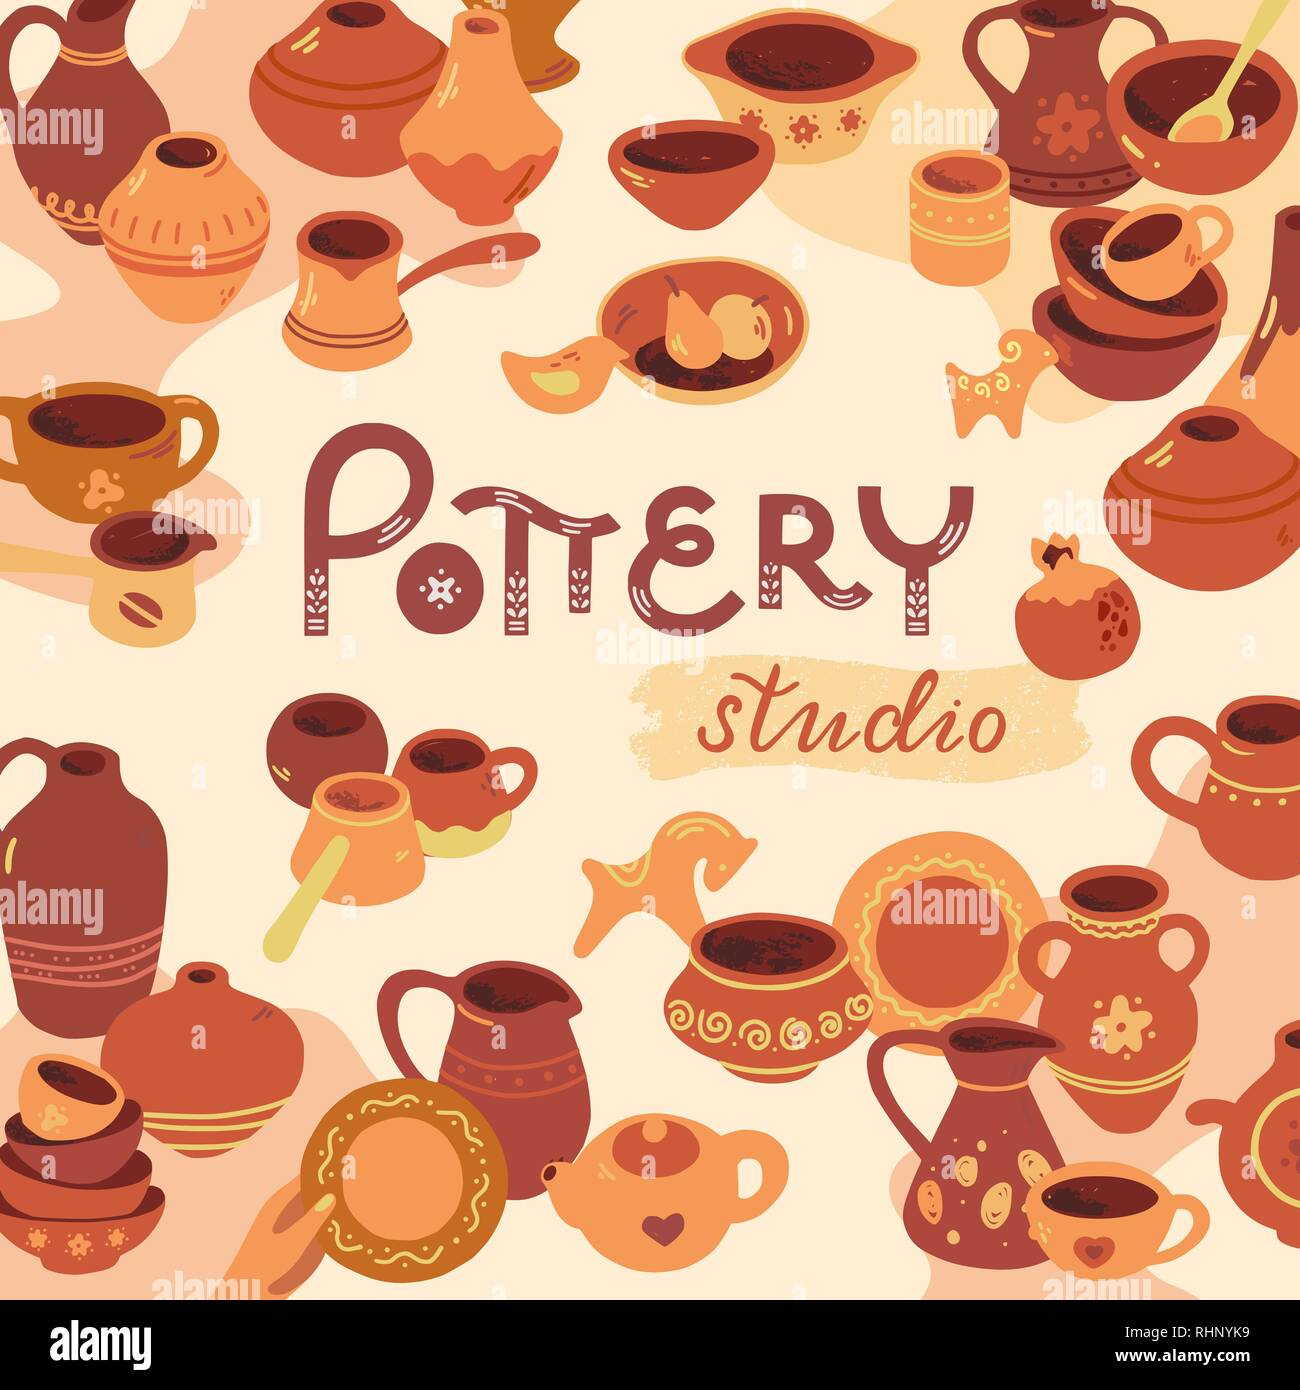 Pottery workshop, ceramics classes banner illustration. Vector line icon of clay studio tools. Pottery wheel, potter, clay horse, and other ceramic products in the icon set in flat style. - Stock Vector